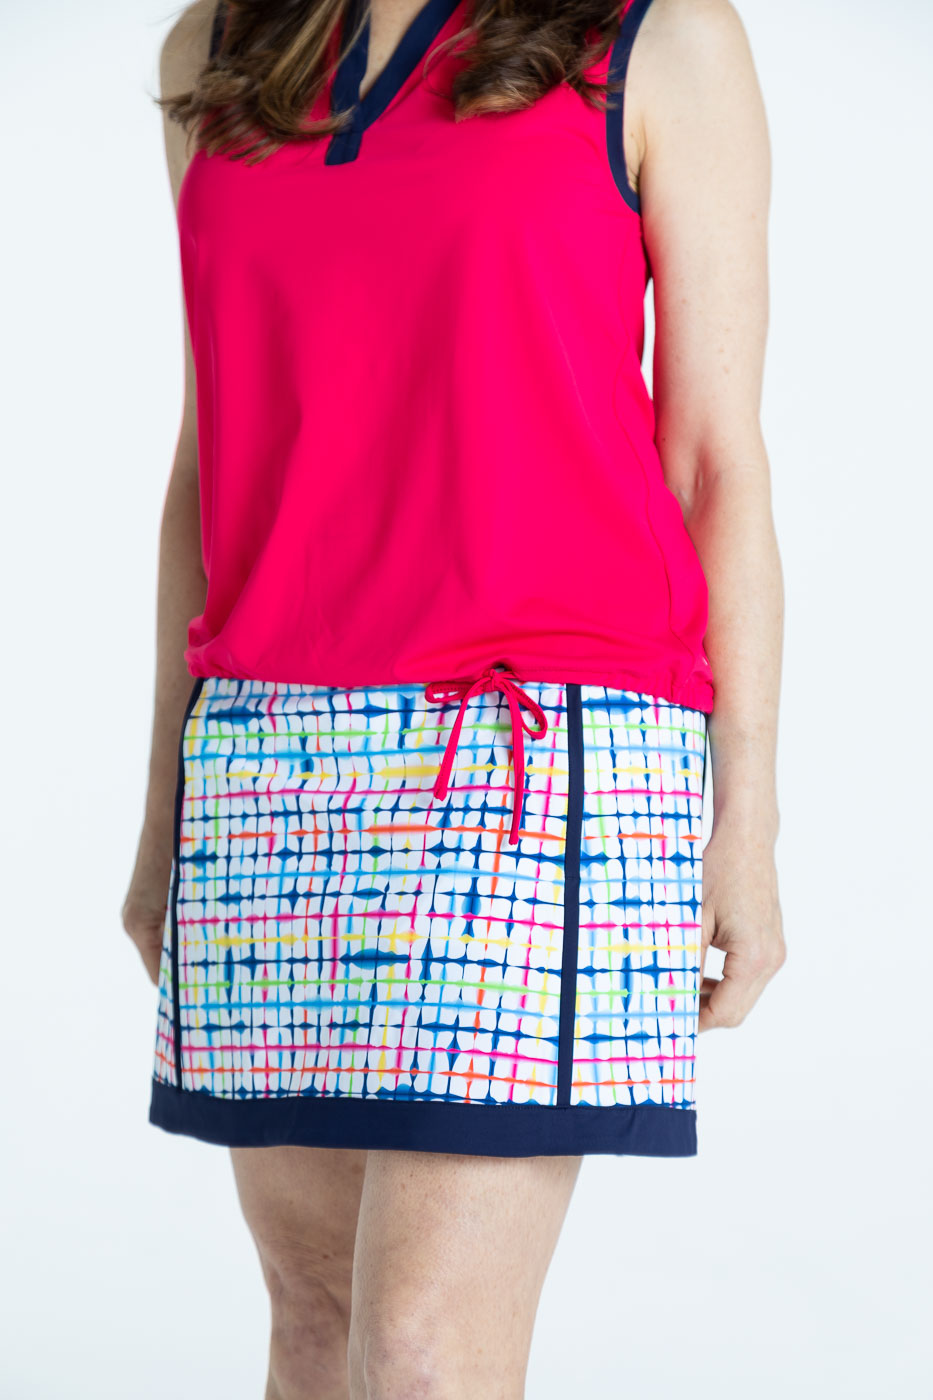 Closer view of woman golfer in raspberry red Free and Easy Sleeveless Golf Shirt and a blurred lines Fresh and Flirty Golf Skort